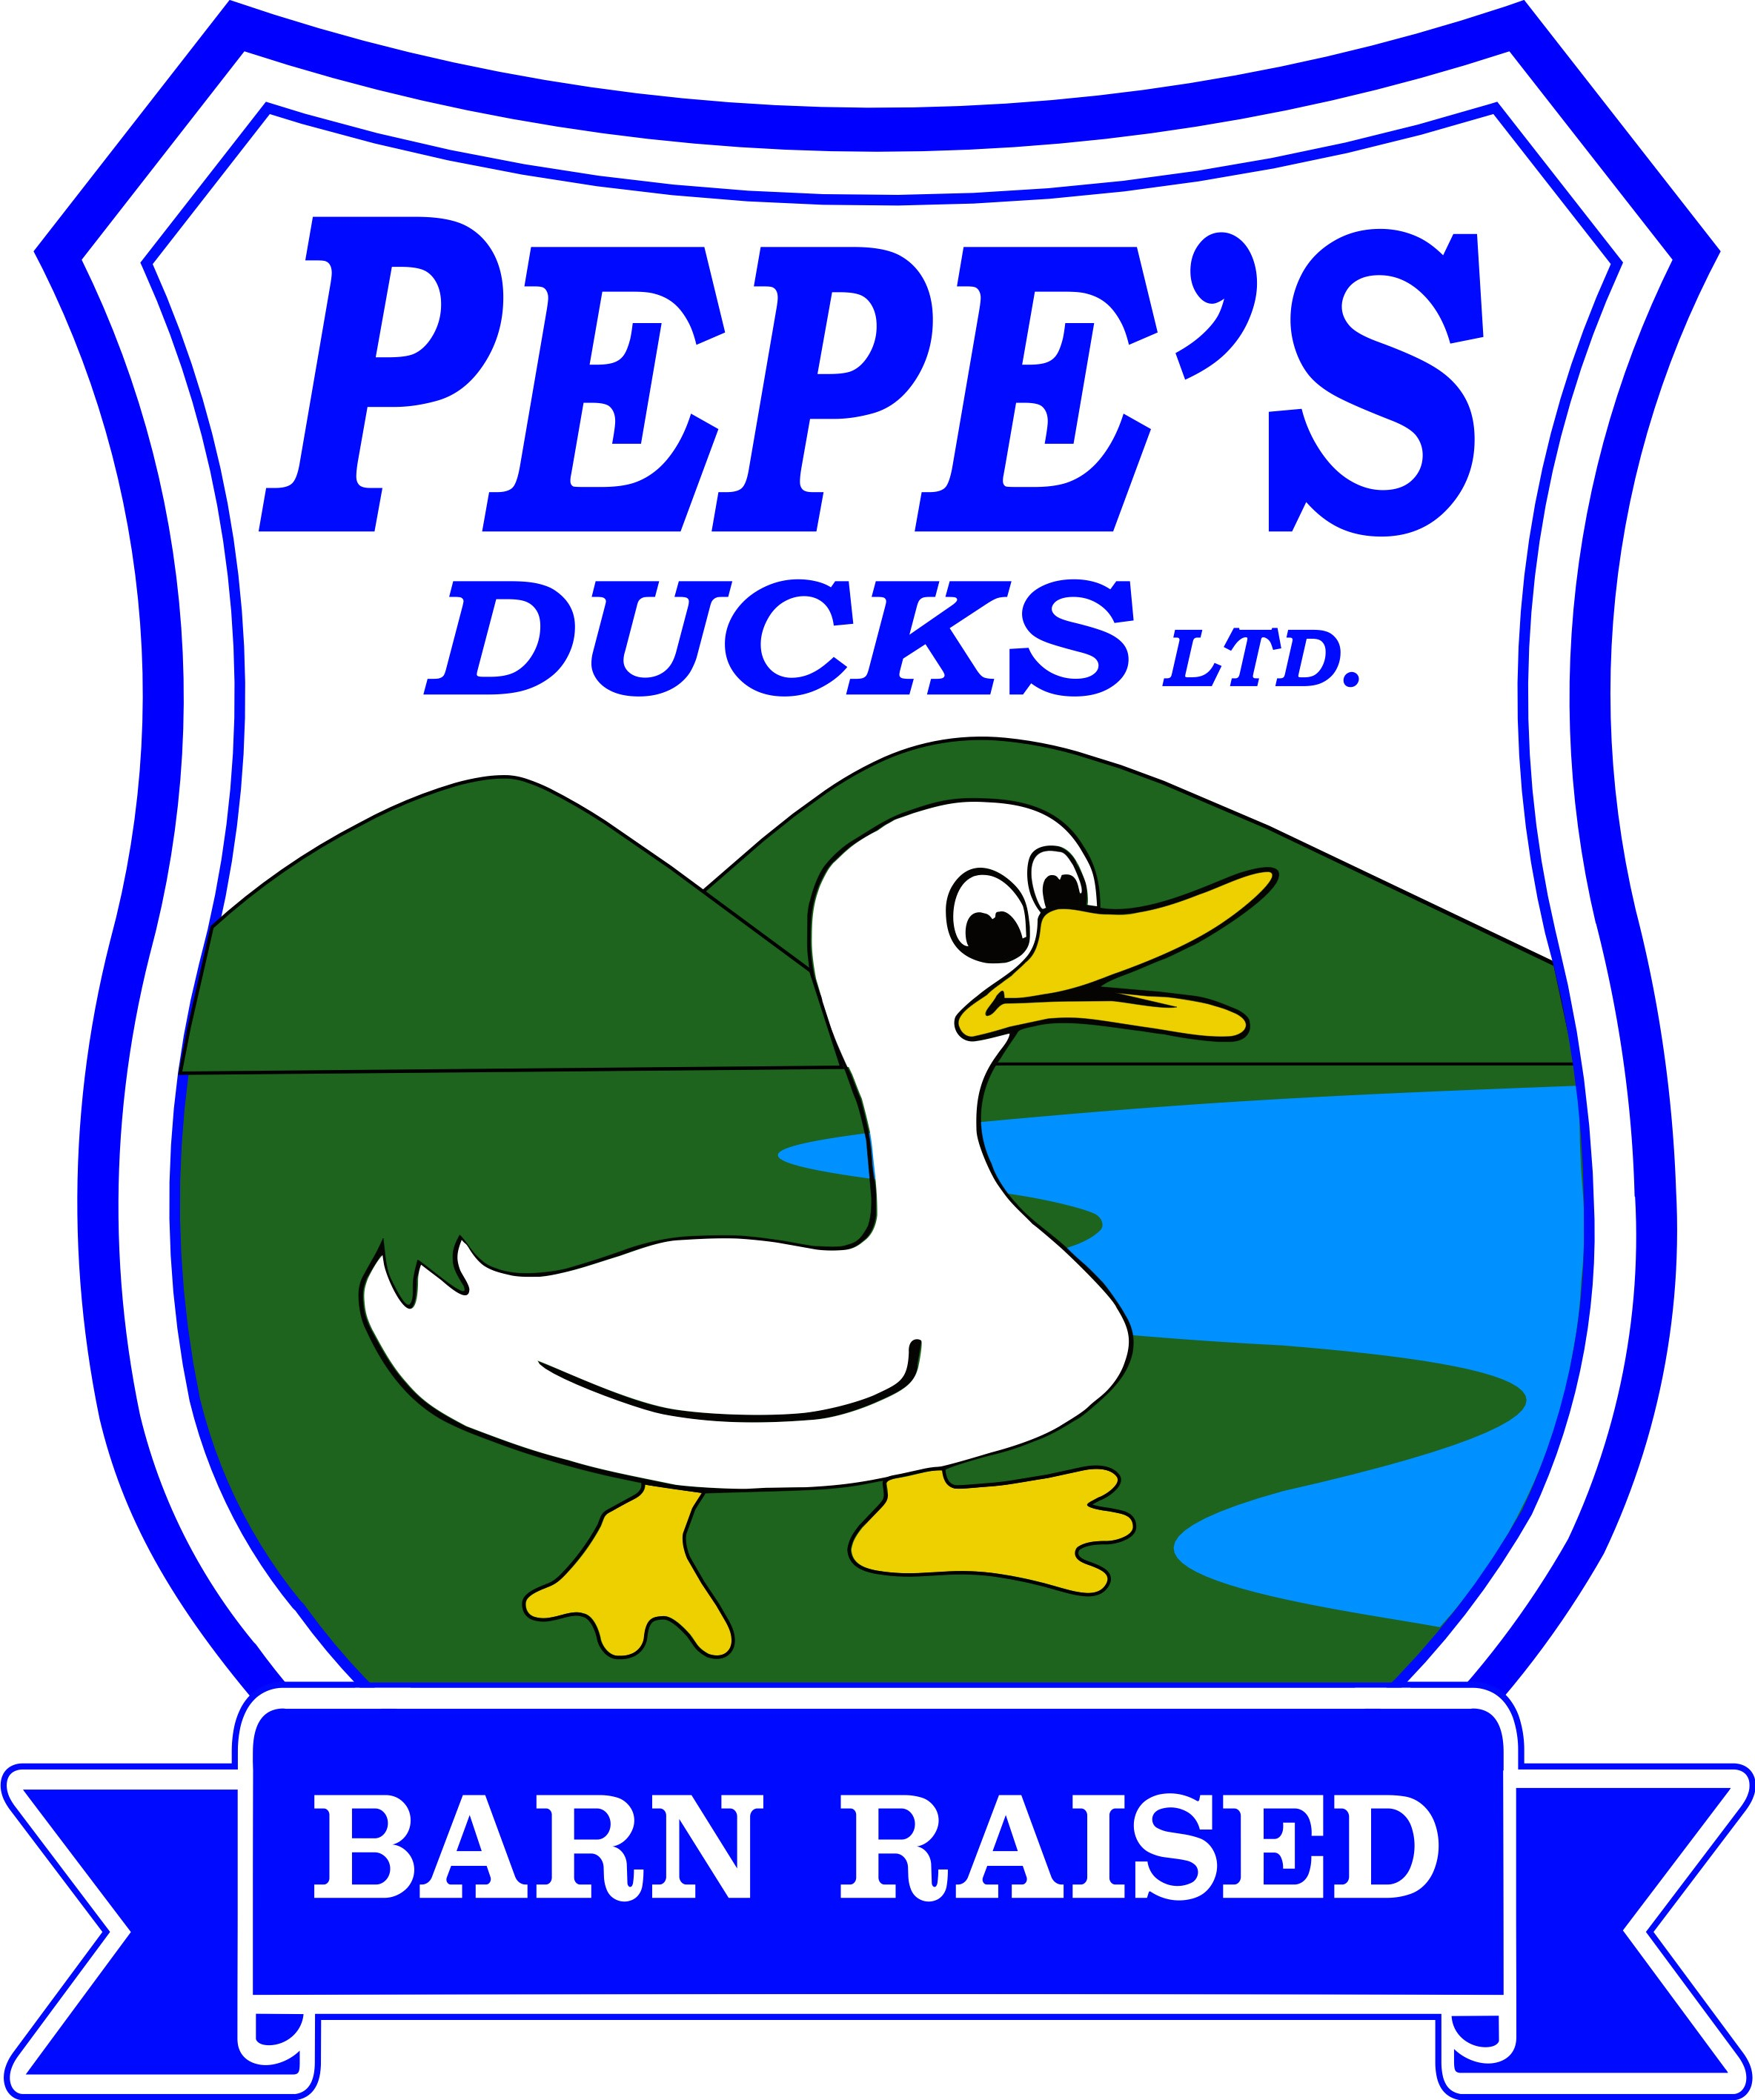 PEPES DUCKS